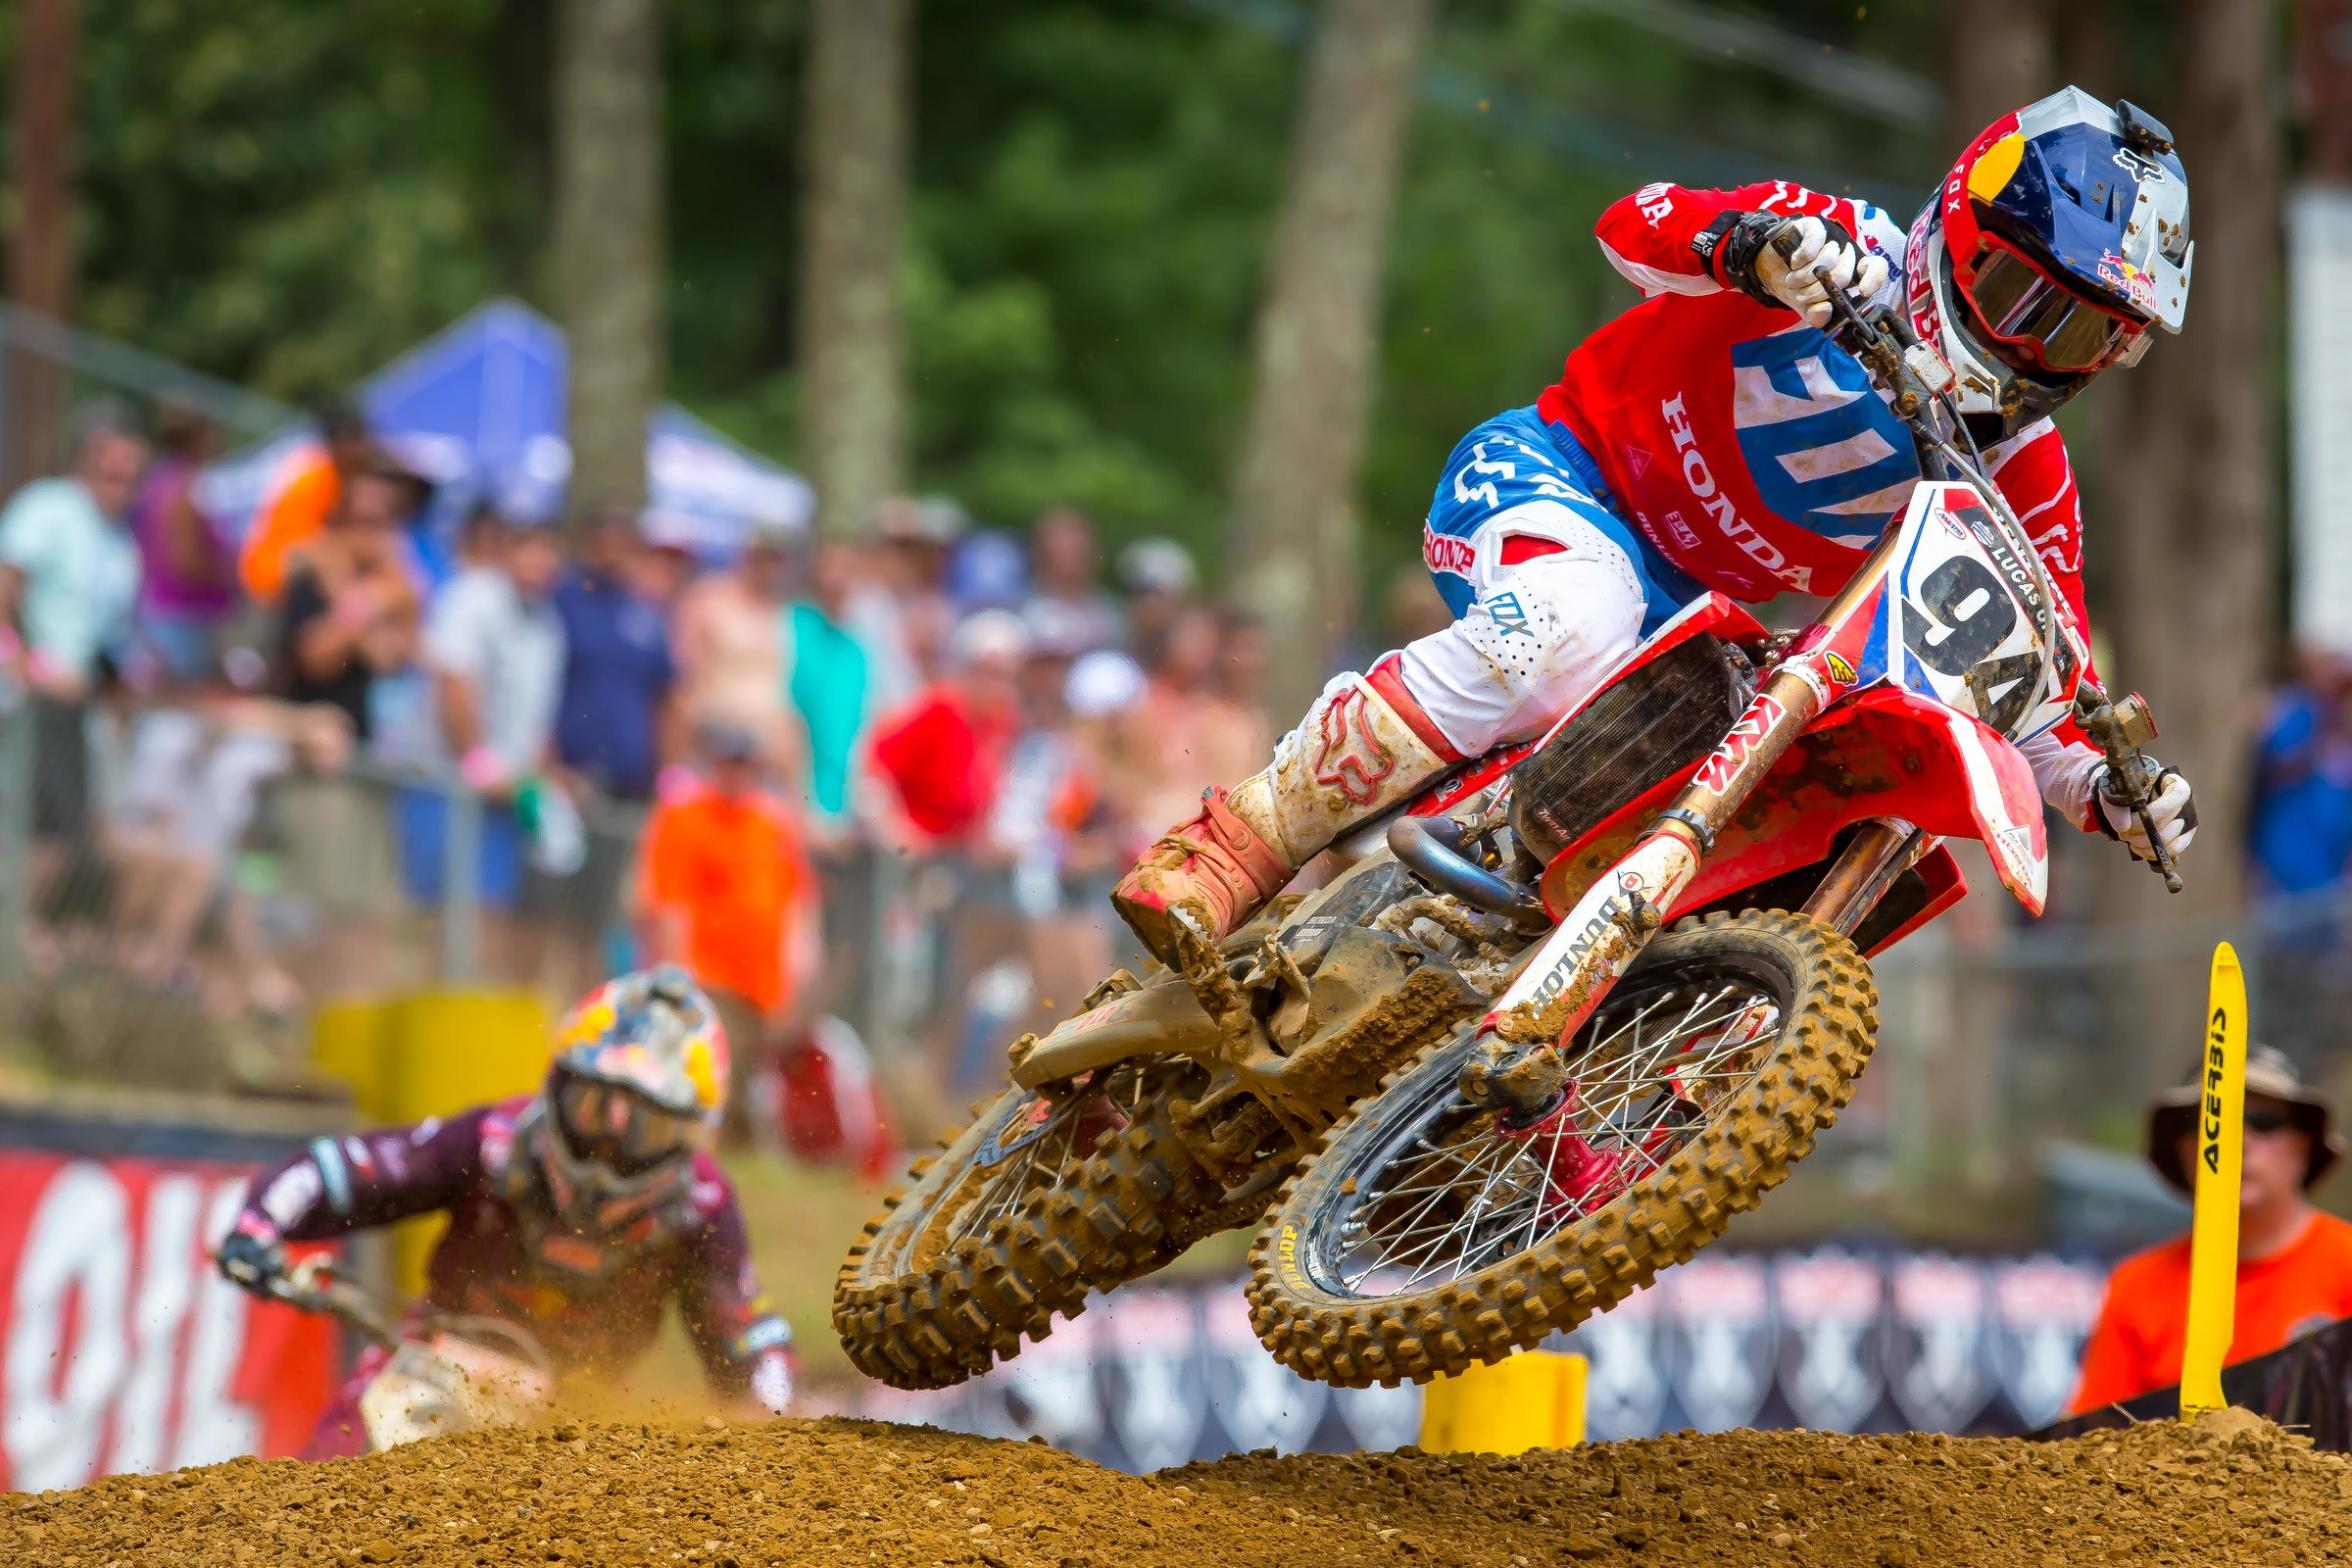 Roczen returned to podium form with a second-place finish after taking seventh overall at Unadilla the previous weekend.